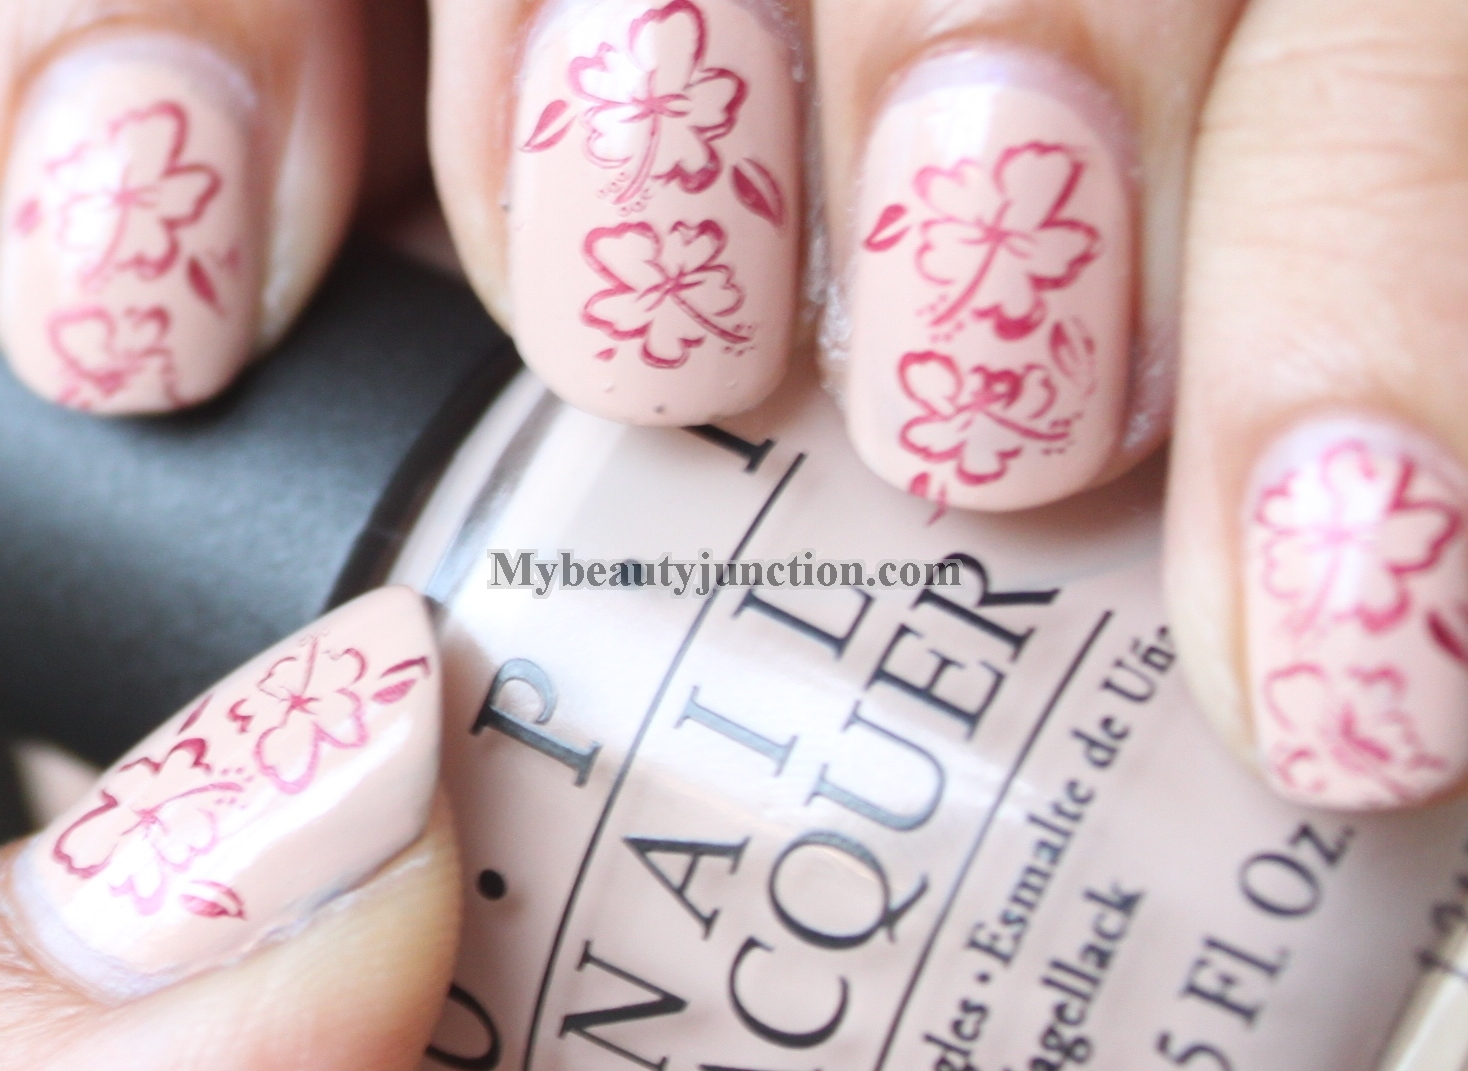 Stamping nail art tutorial II - with Konad image plate and O.P.I. ...